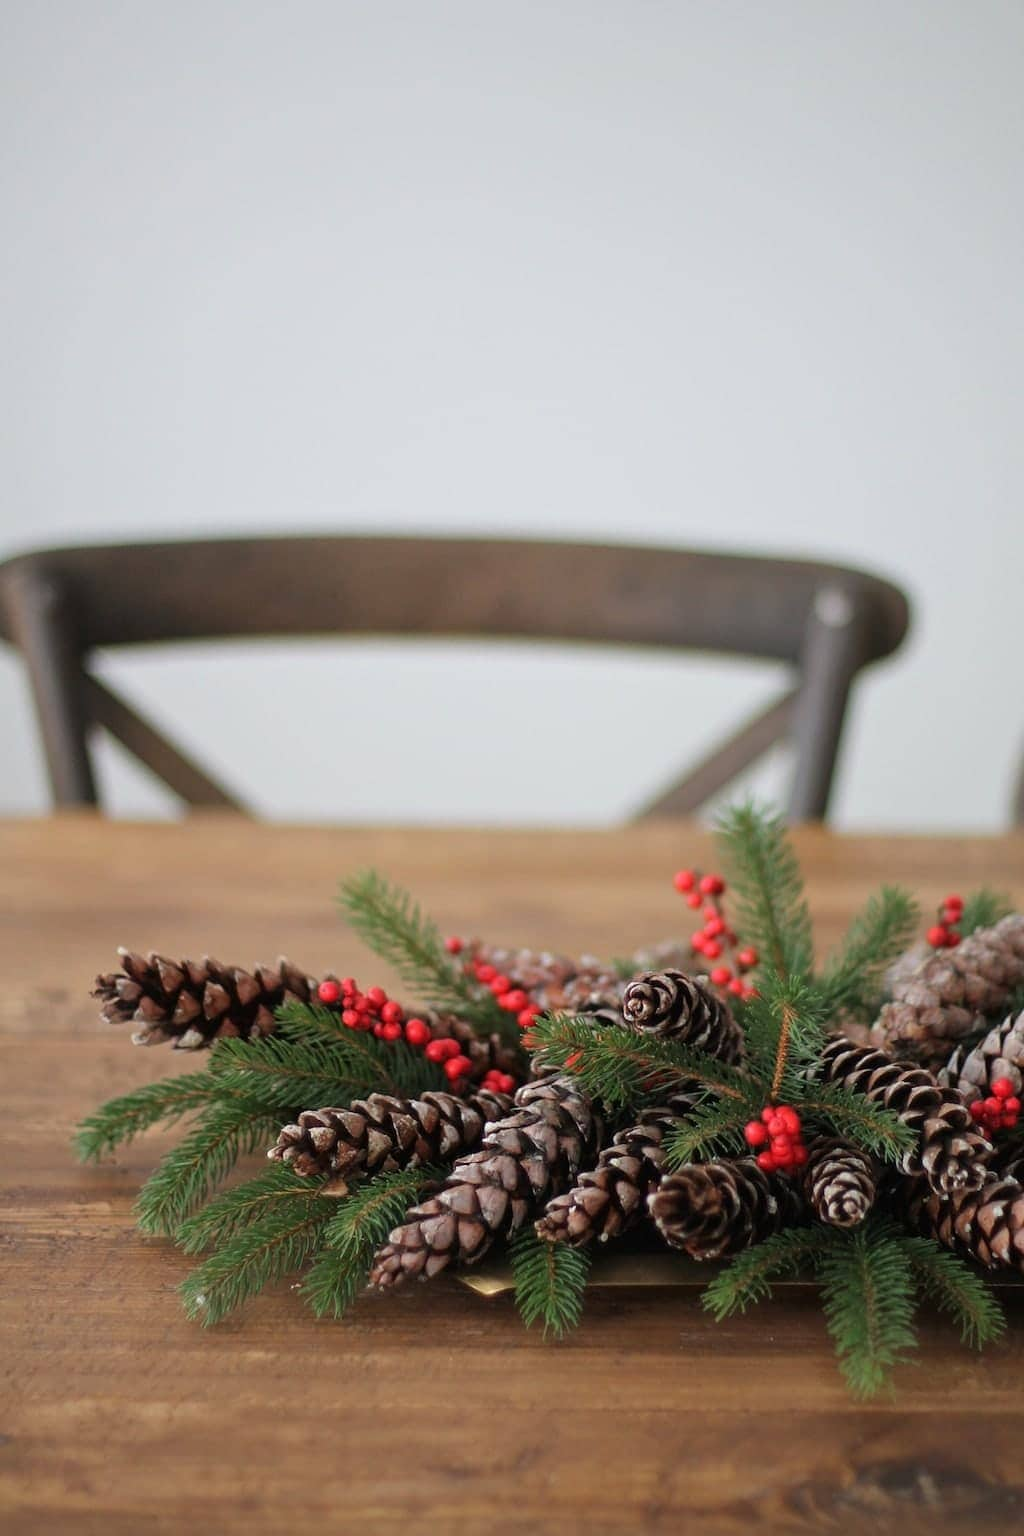 A farm table with a greenery, berry and pinecone centerpiece.